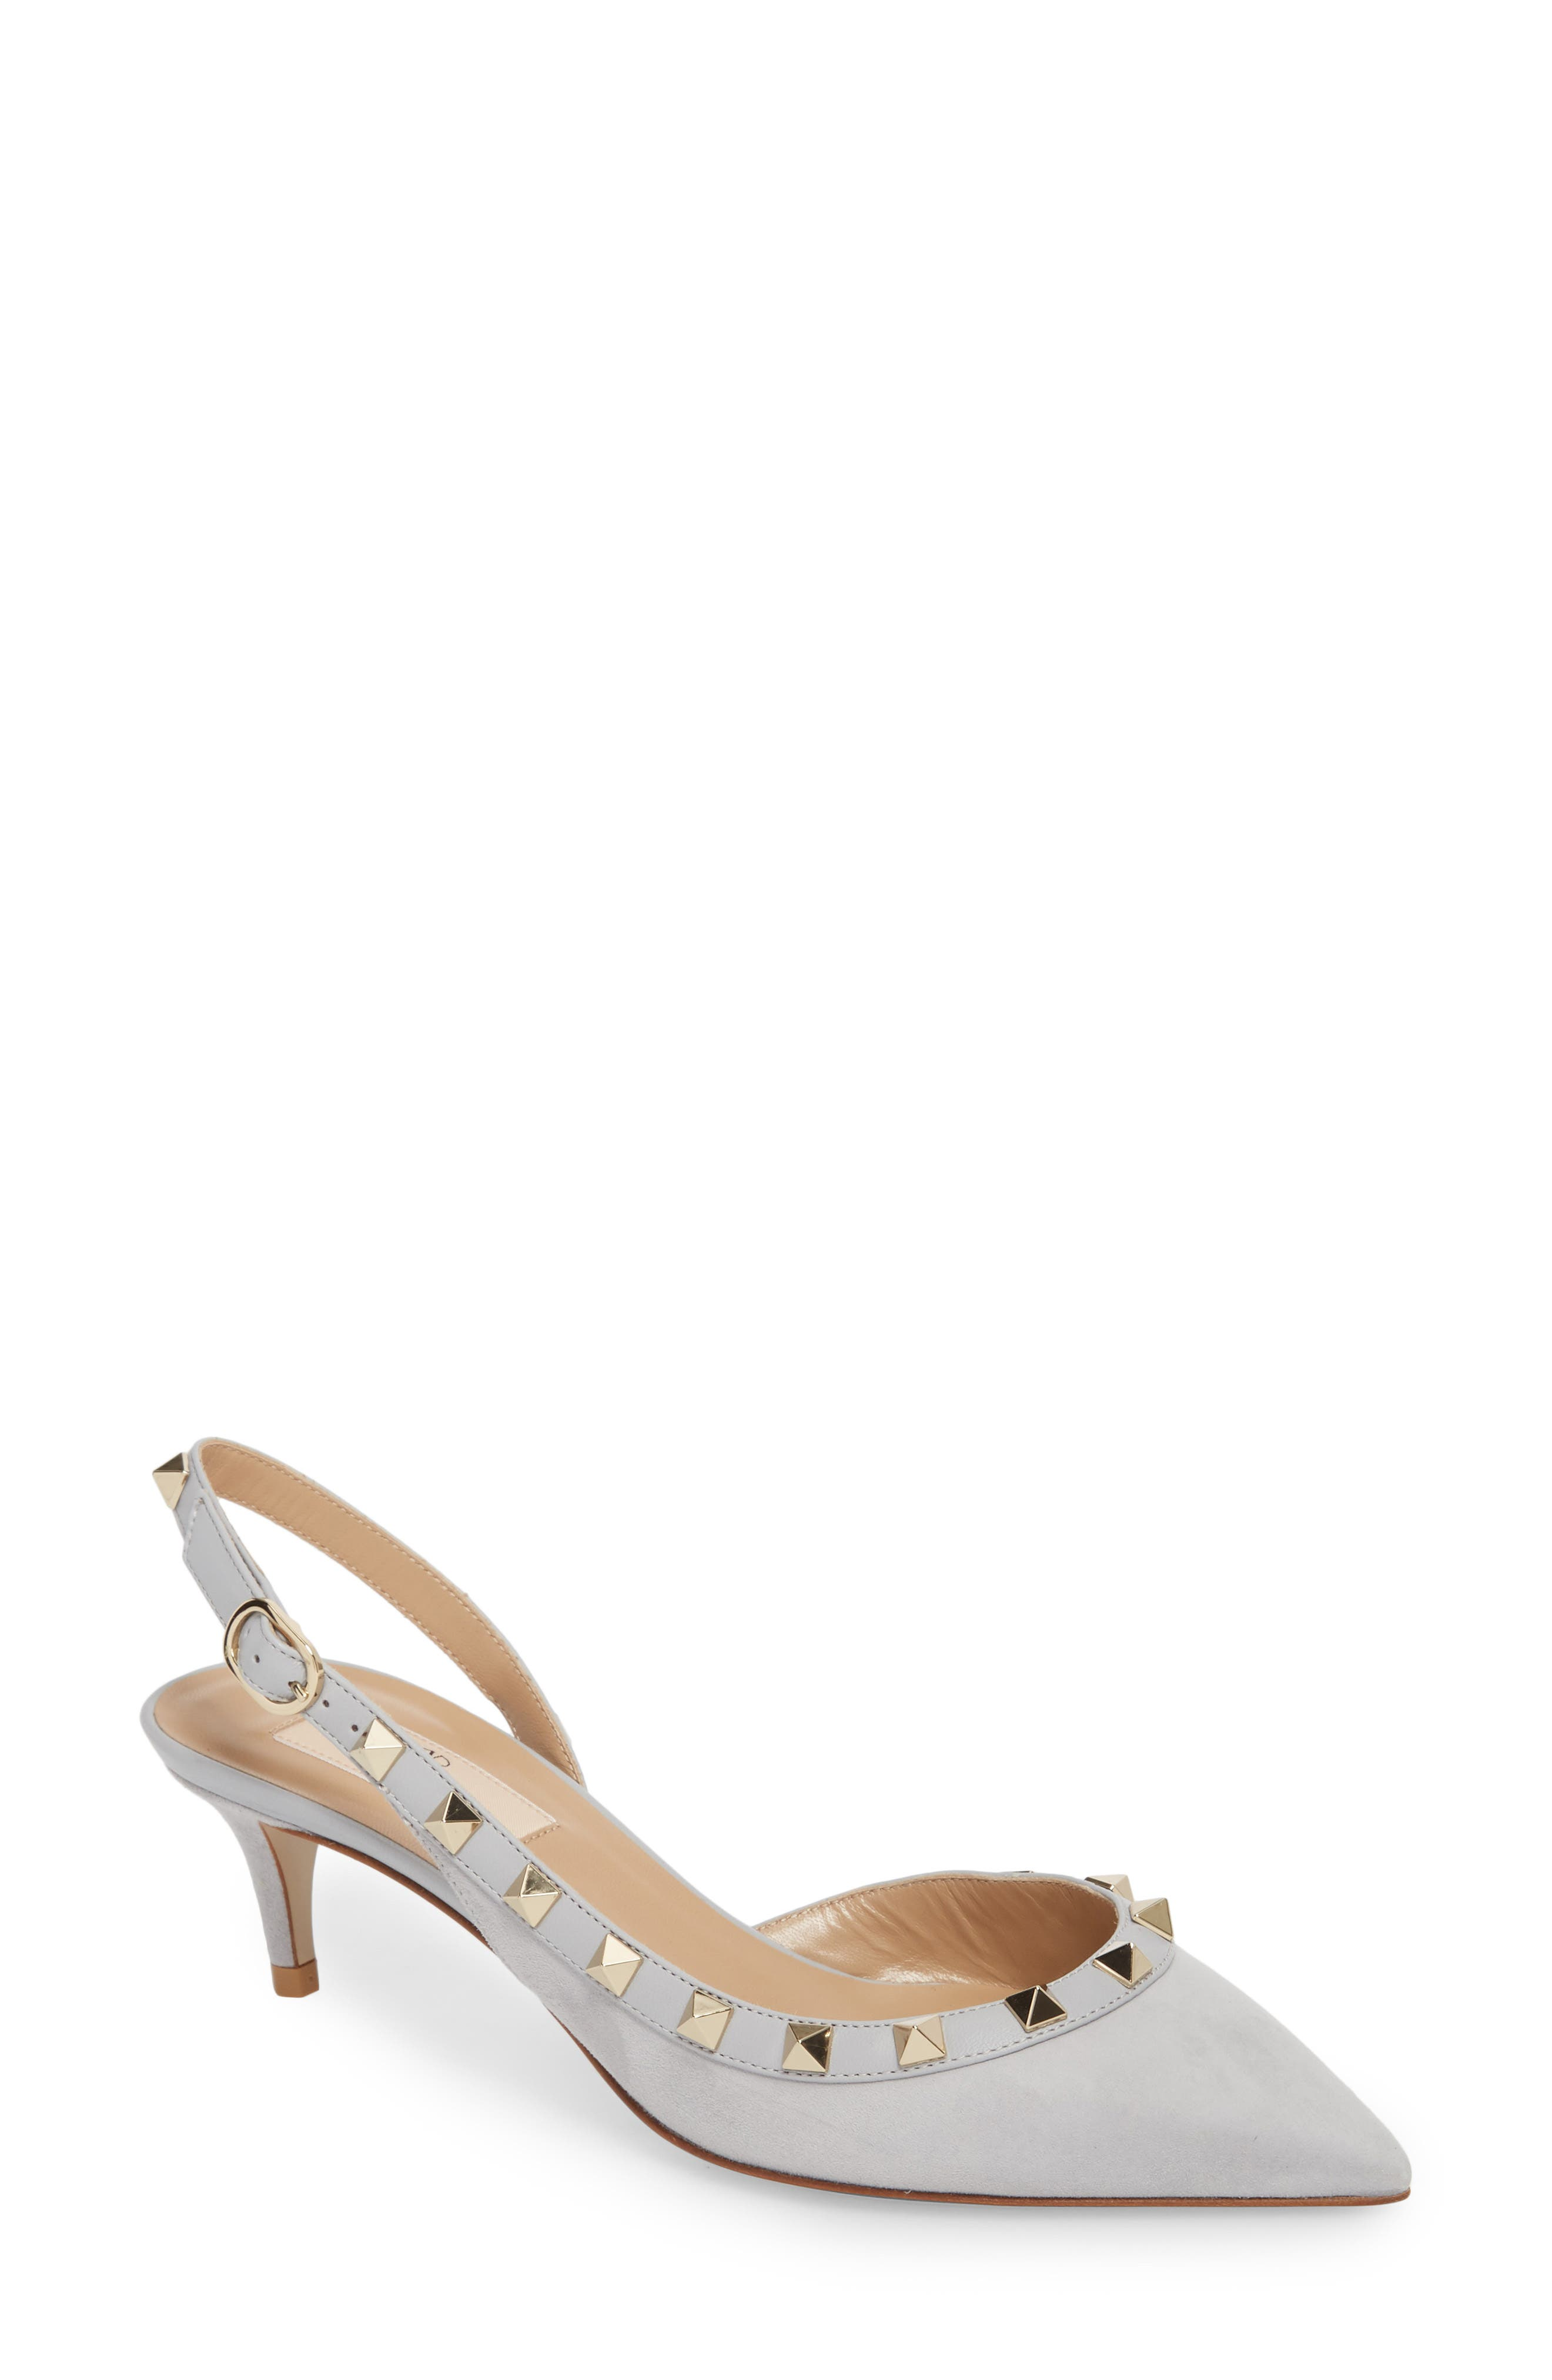 Rockstud Slingback Pump,                             Main thumbnail 1, color,                             Pastel Grey Suede